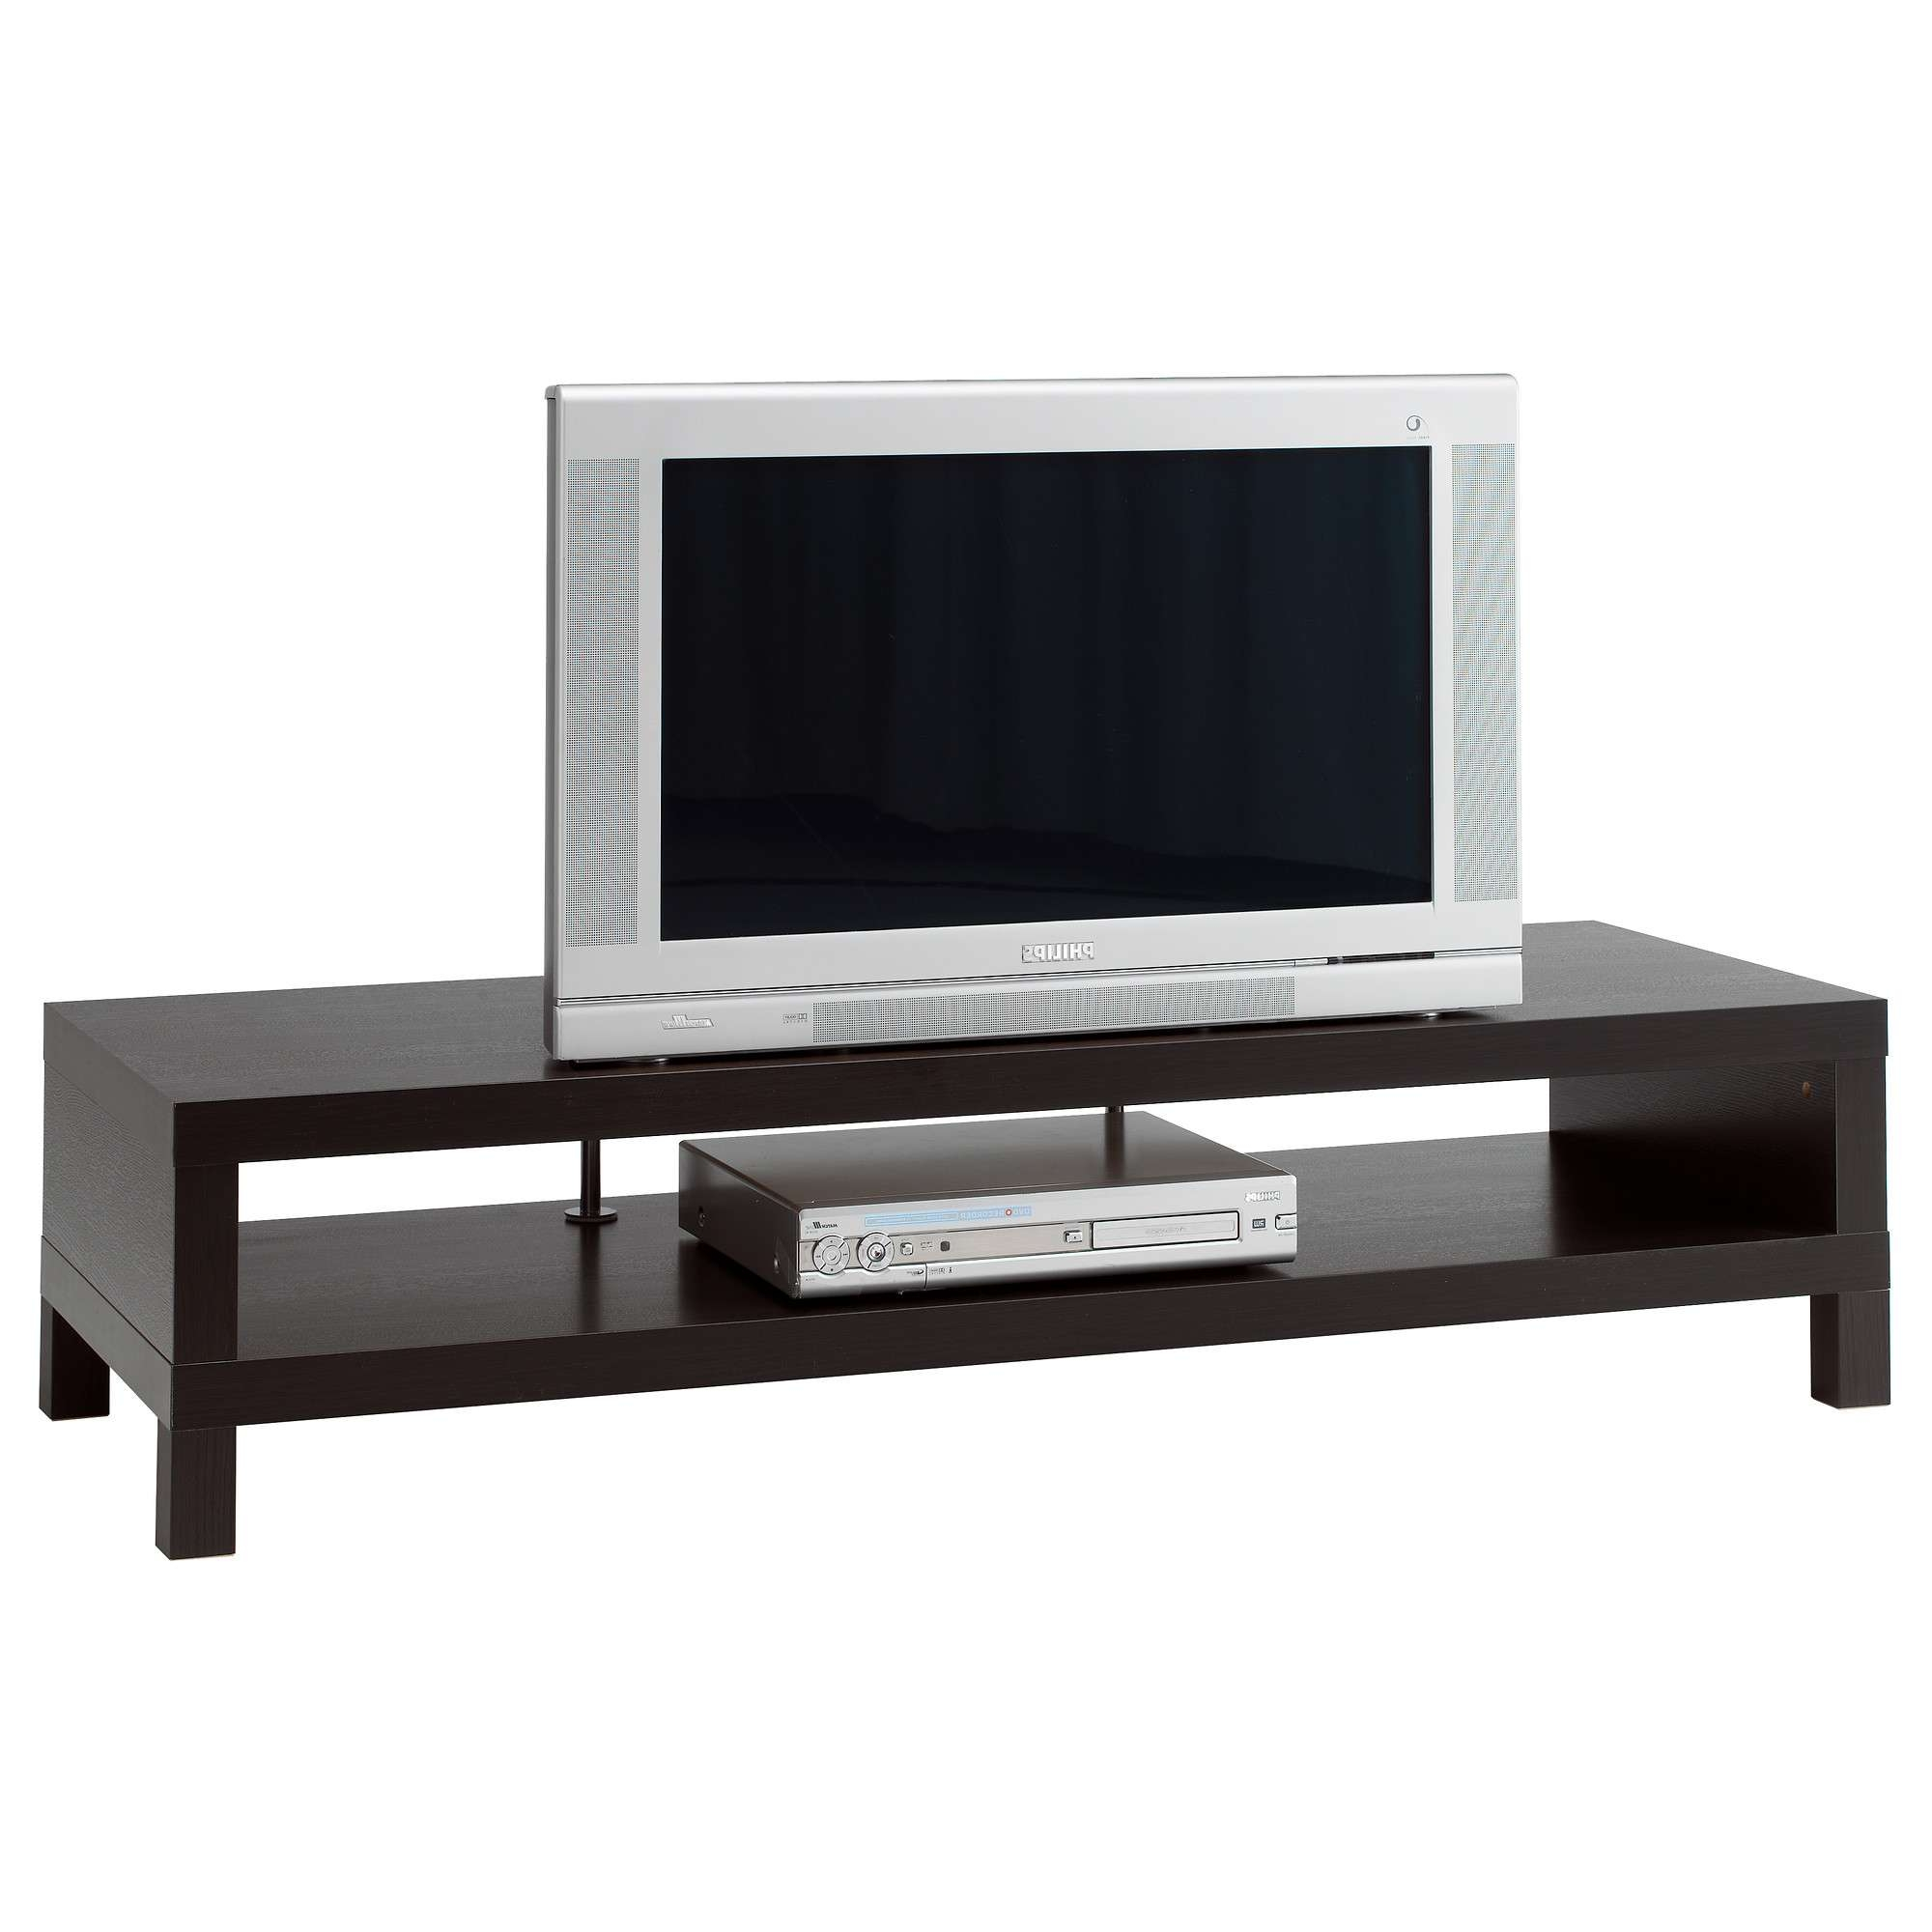 Lack Tv Bench Black Brown 149x55 Cm – Ikea With Regard To Bench Tv Stands (View 10 of 15)